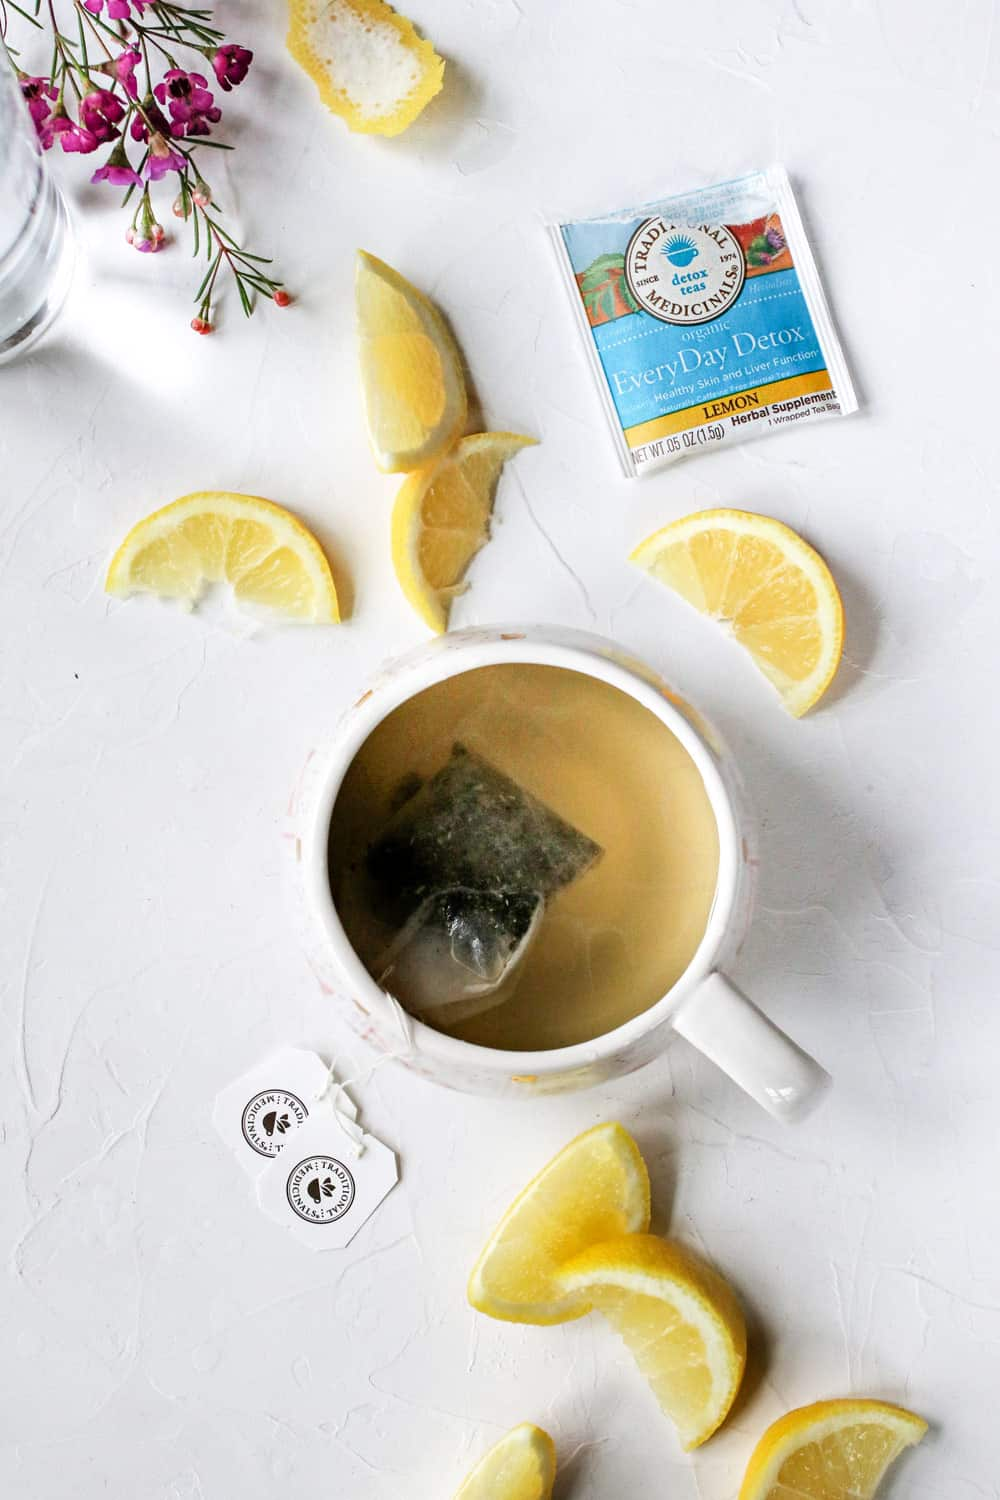 The Best Teas for Detox and Digestive Support